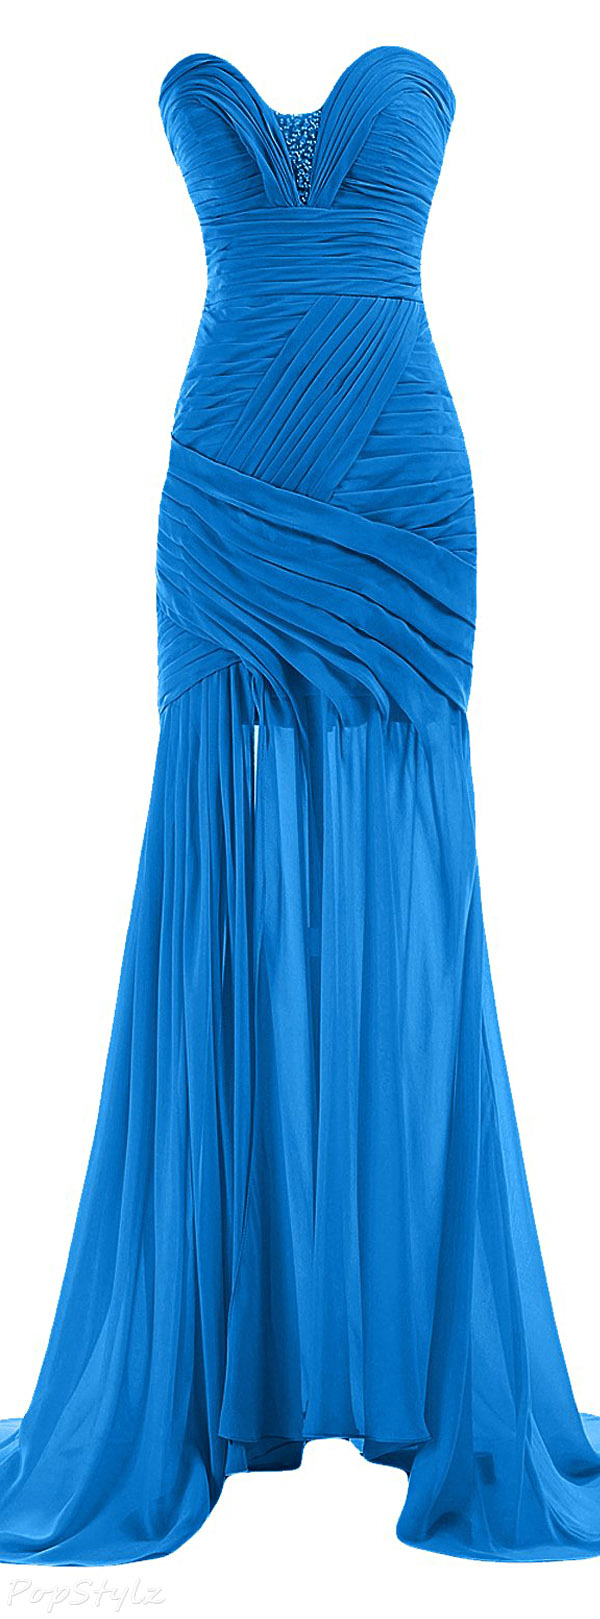 Sunvary Strapless Sweetheart Evening Gown